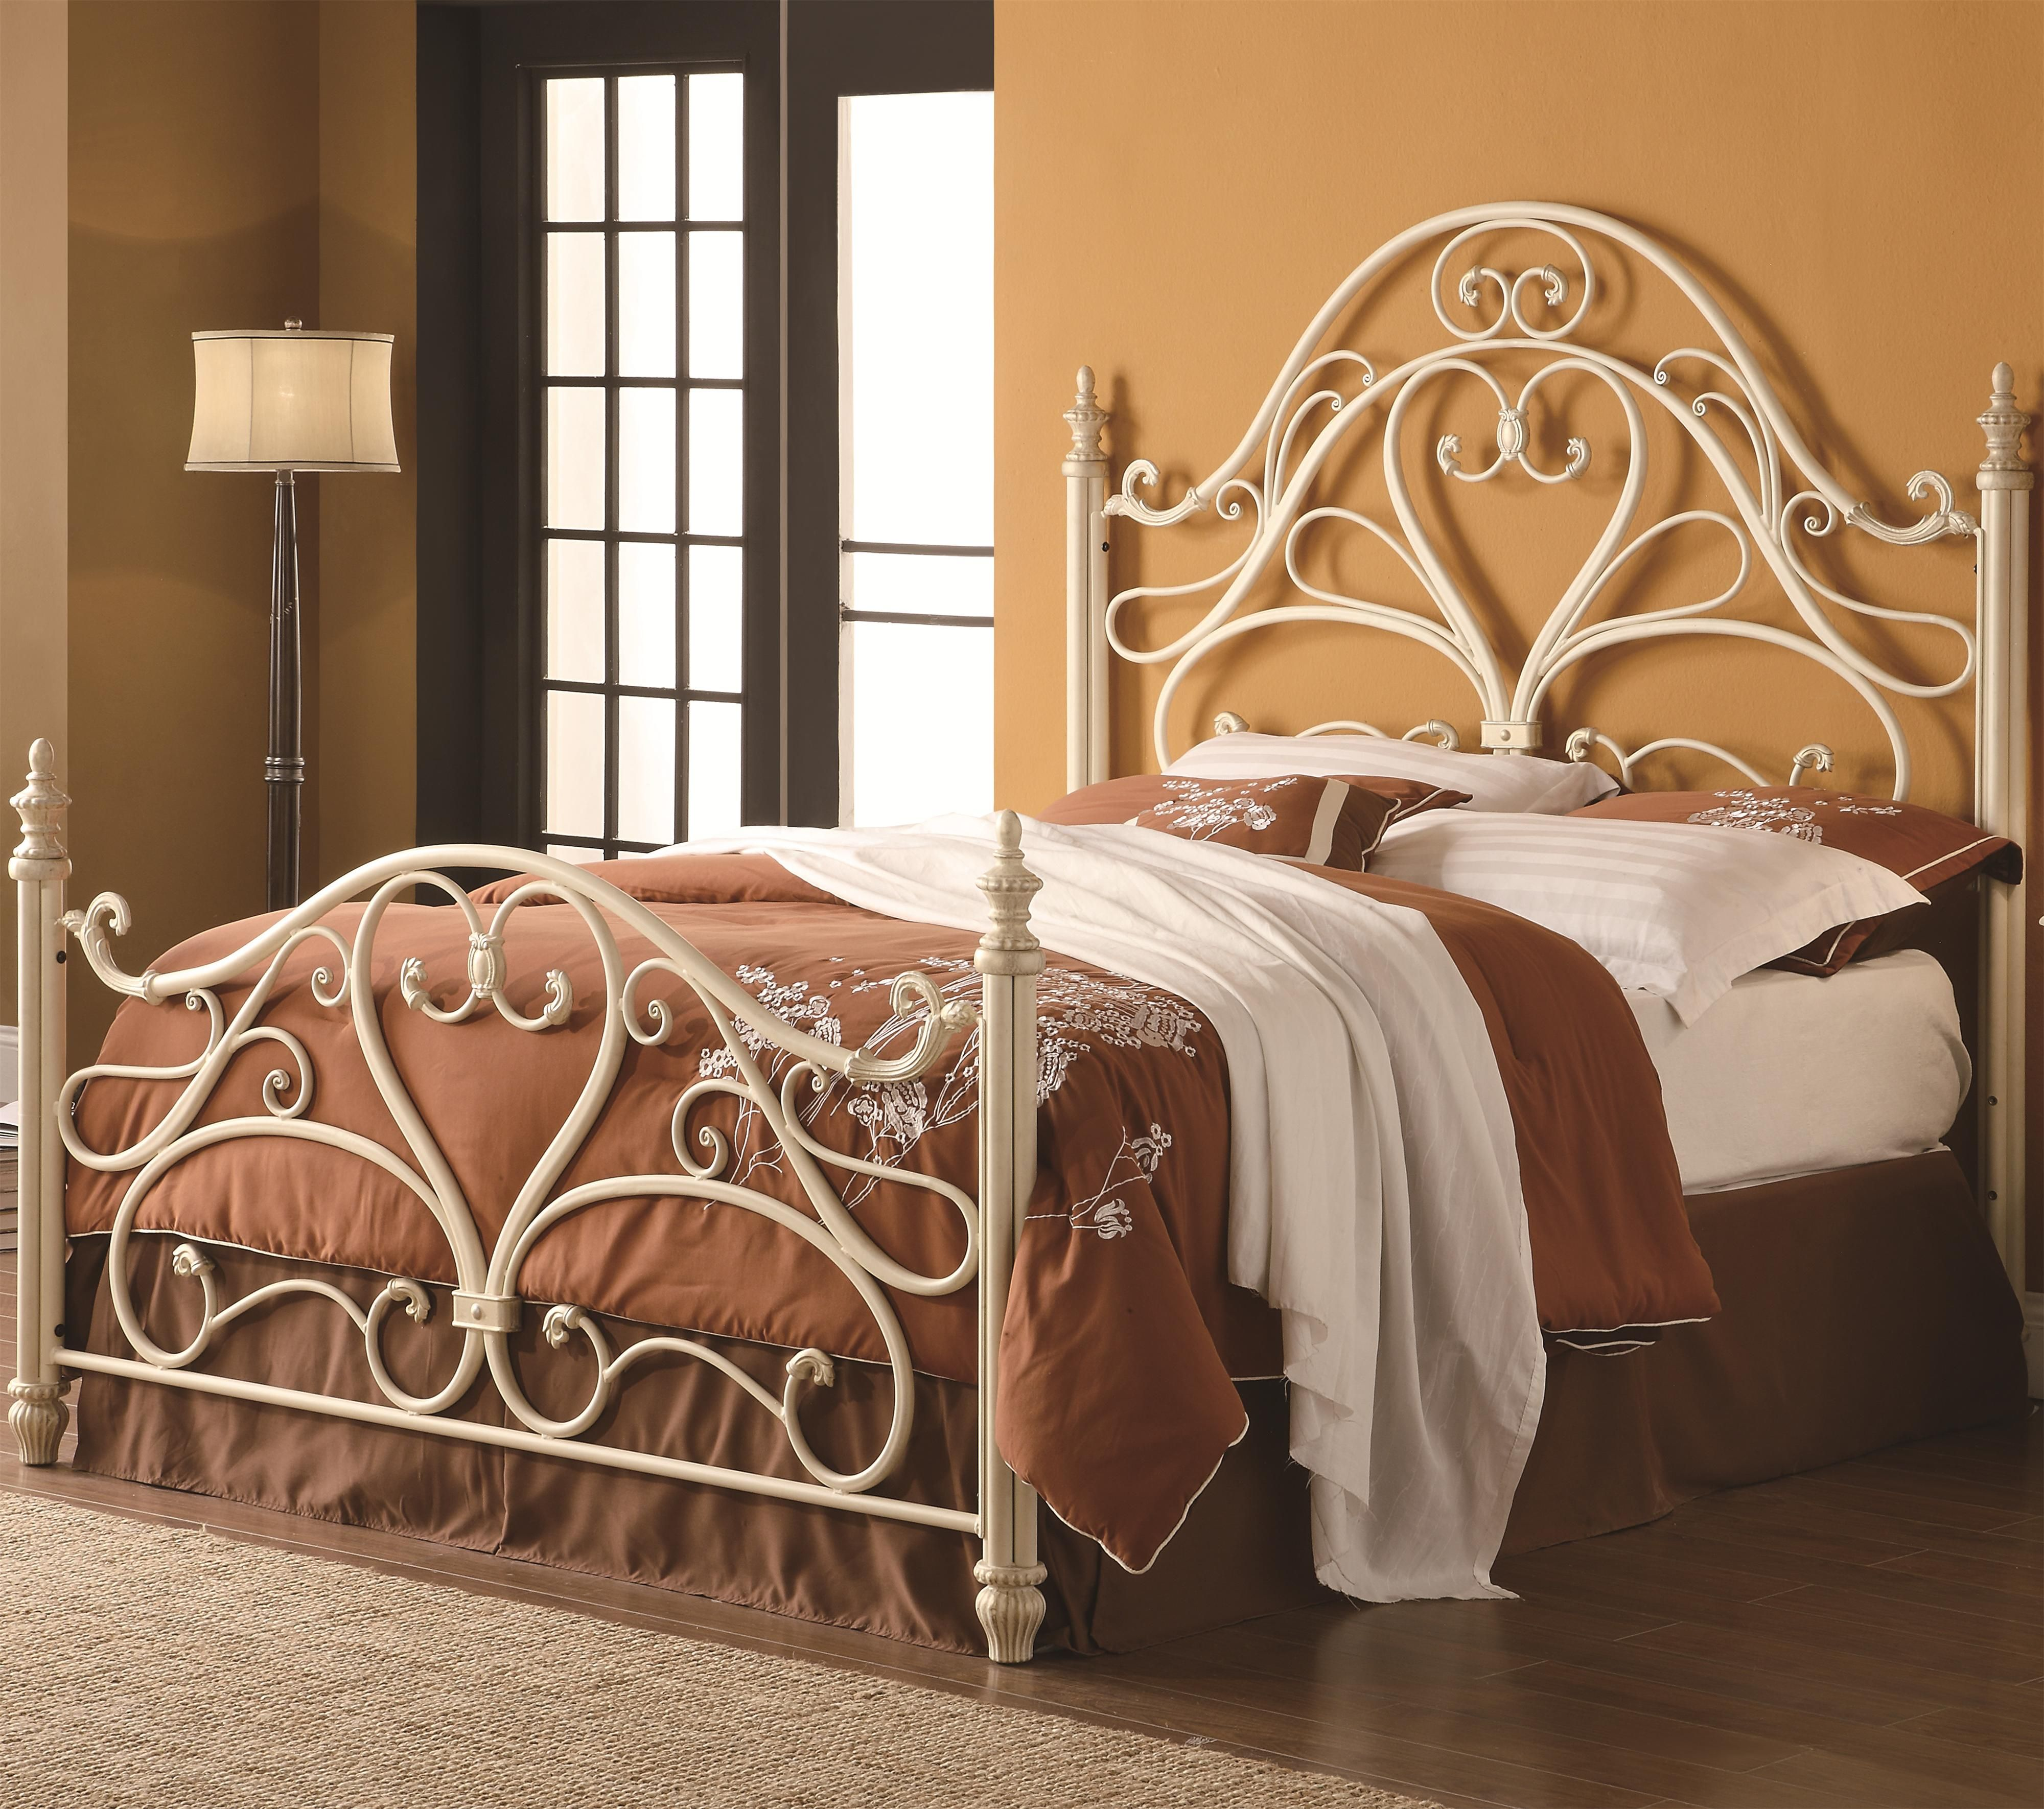 Iron Beds and Headboards Queen Iron Bed by Coaster camas de